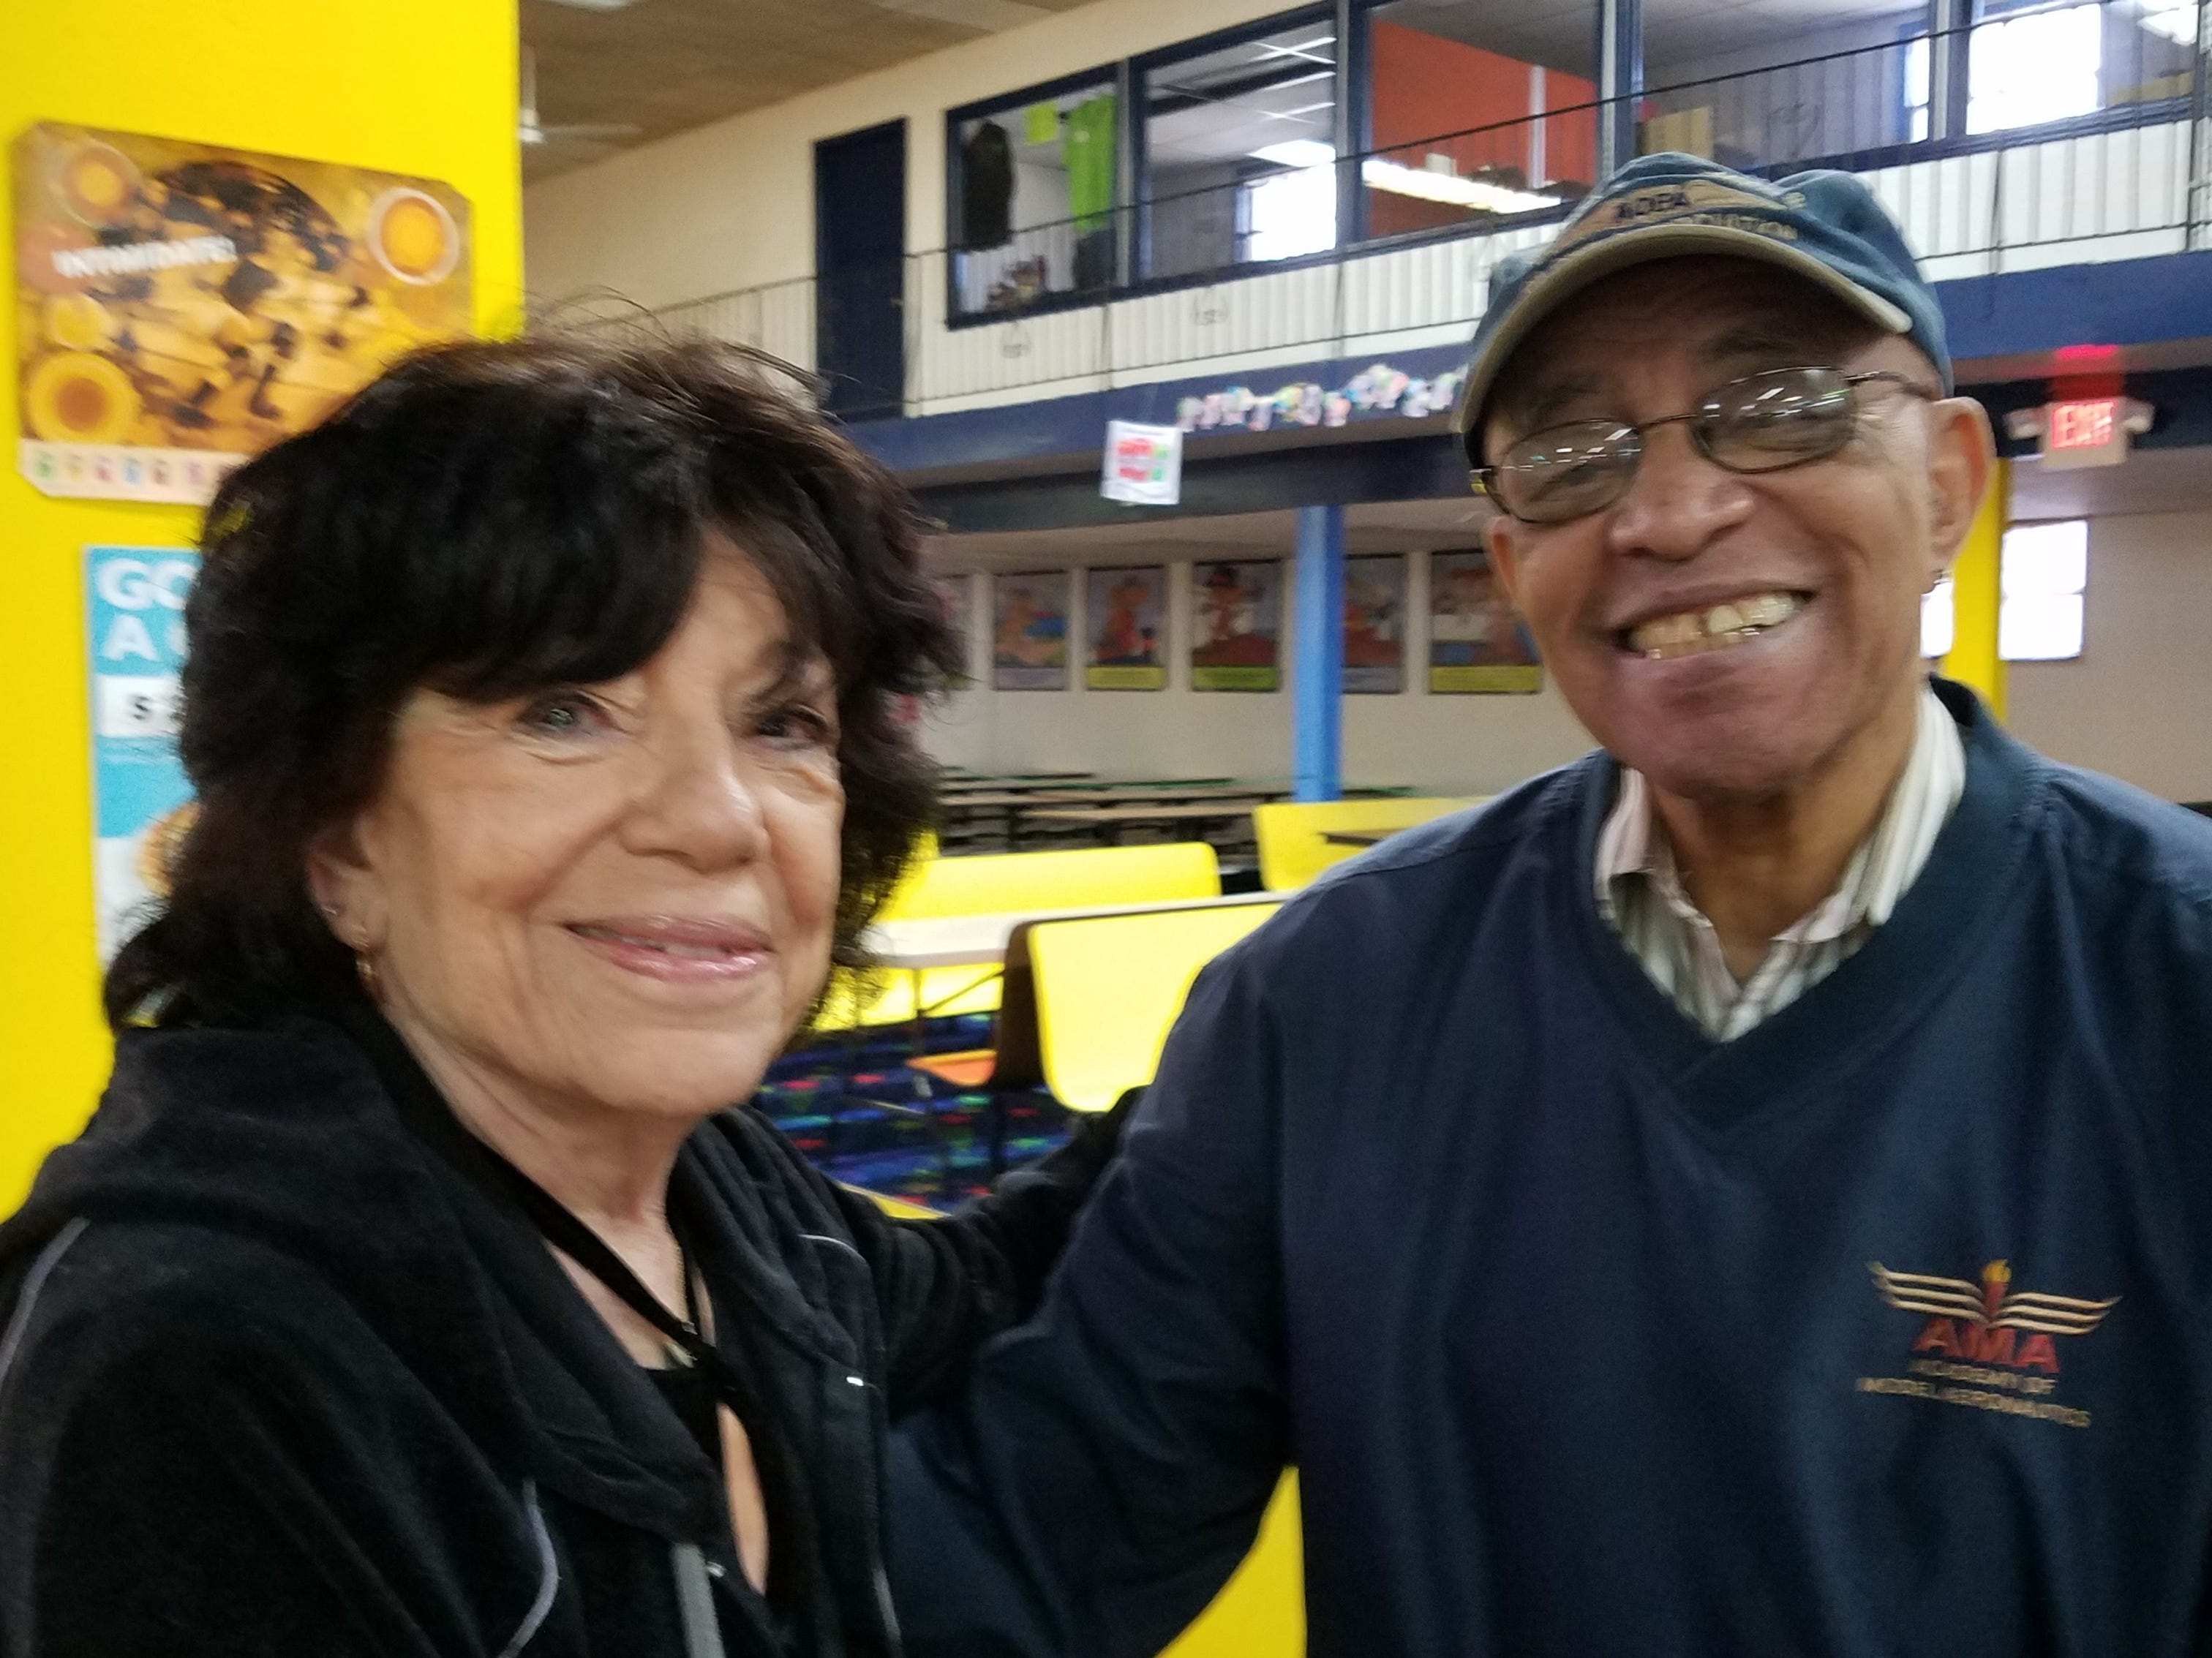 """At least twice a week, more than 20 seniors, including Betty """"Betty Boop"""" SamMarco of Staten Island and Ken """"sleepy"""" Dawson of Monroe, regularly gather at South Amboy Arenaand take to the rink for a couple hours of roller skating. They range in age from 55 to 100."""